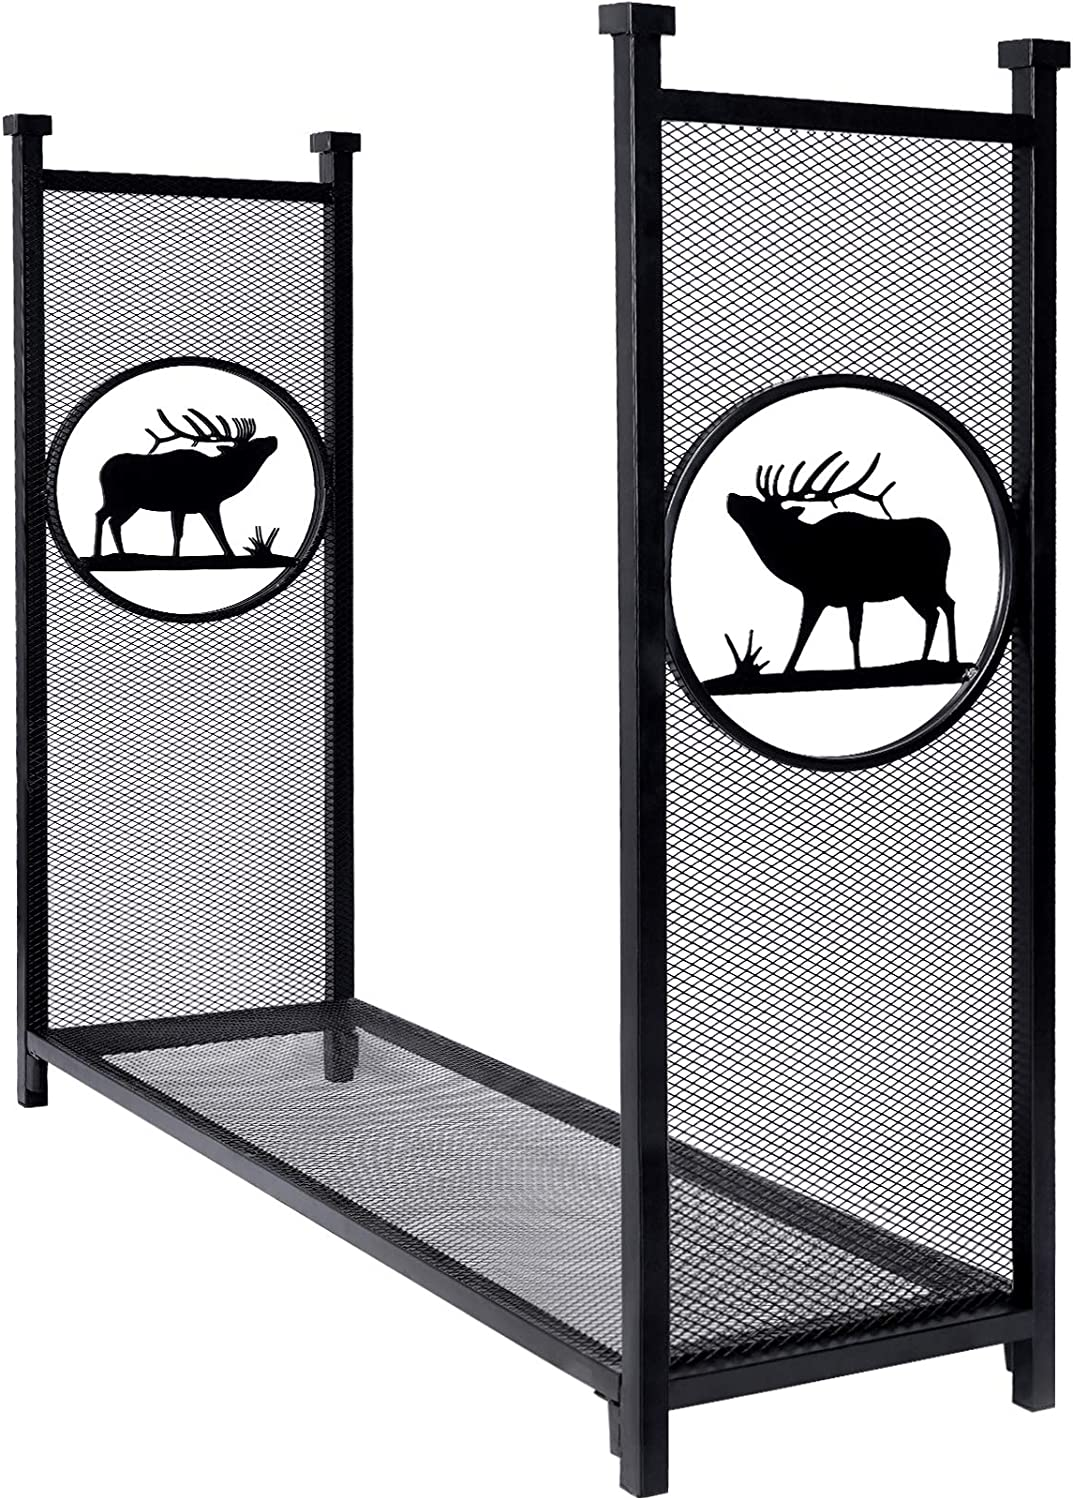 Inno Stage Firewood Log Rack For Outdoor Heavy Duty Log Storage Holder Fire Wood Pile Racks For Fireplace Patio With Special Elk Pattern 4 Home Improvement Amazon Com